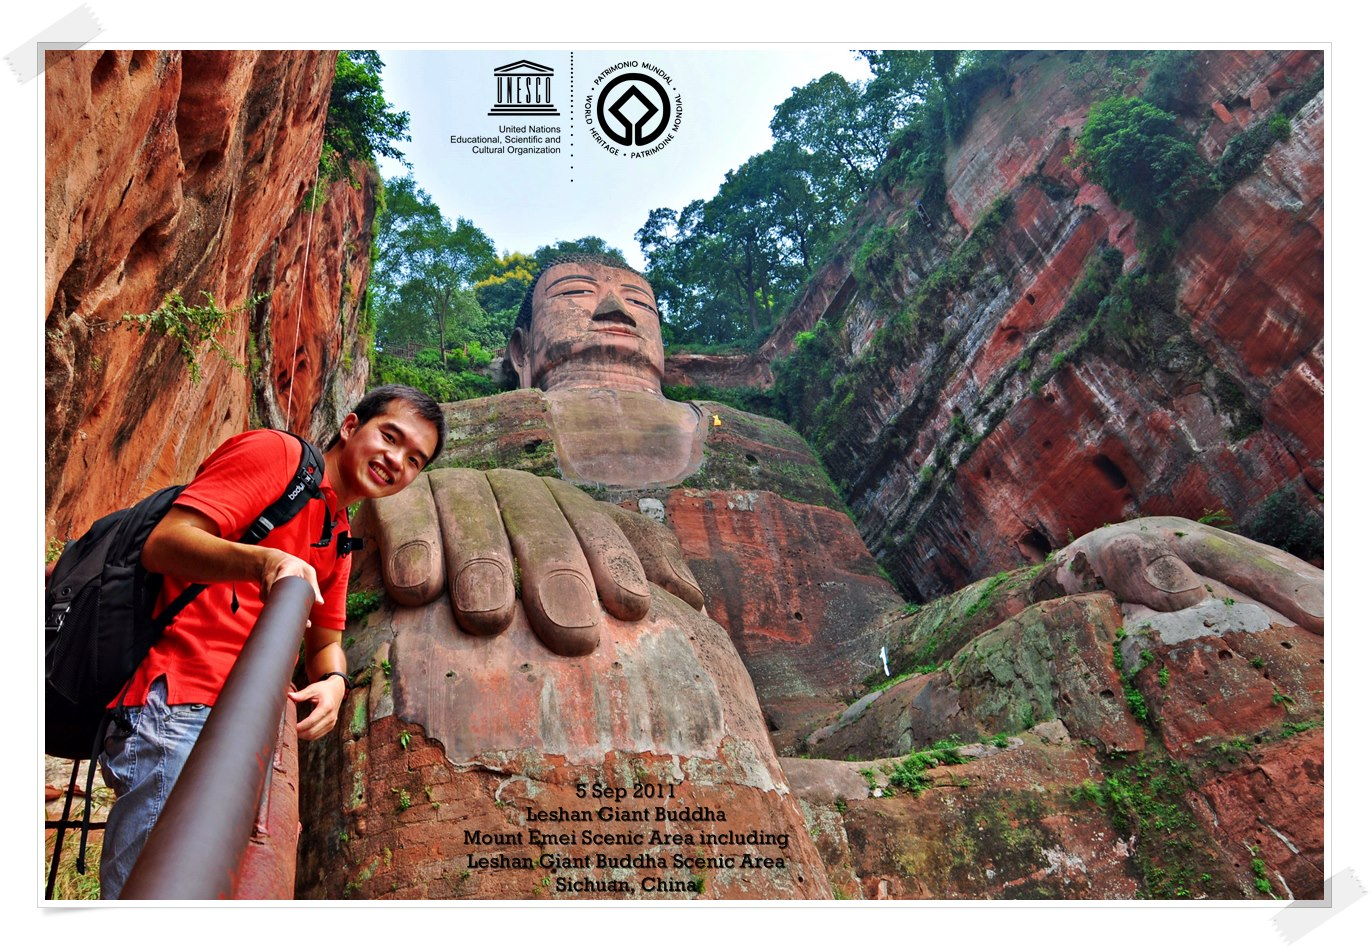 LESHAN GIANT BUDDHA By Thomas shaw